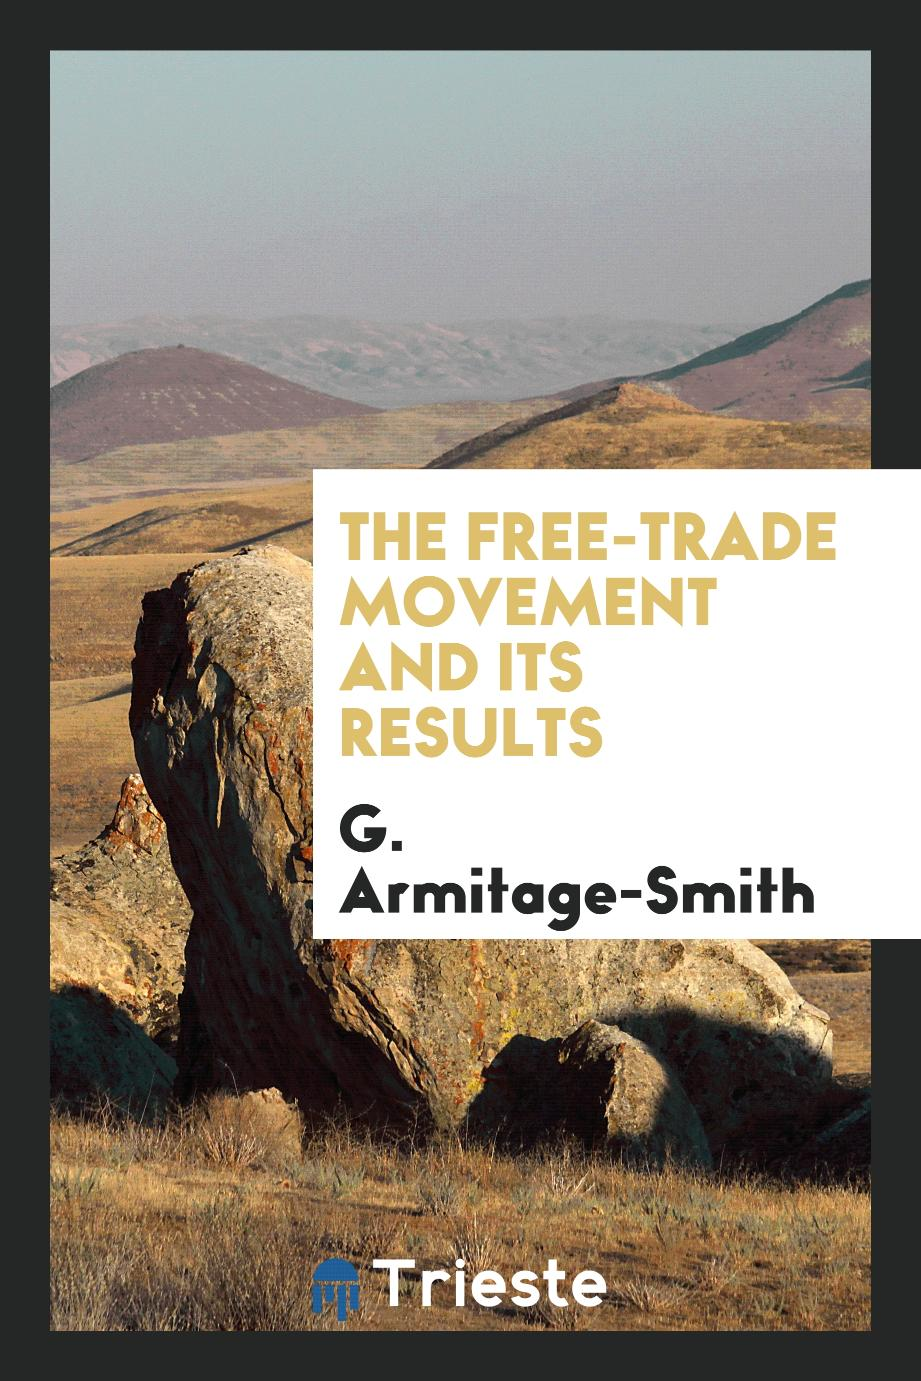 G. Armitage-Smith - The free-trade movement and its results